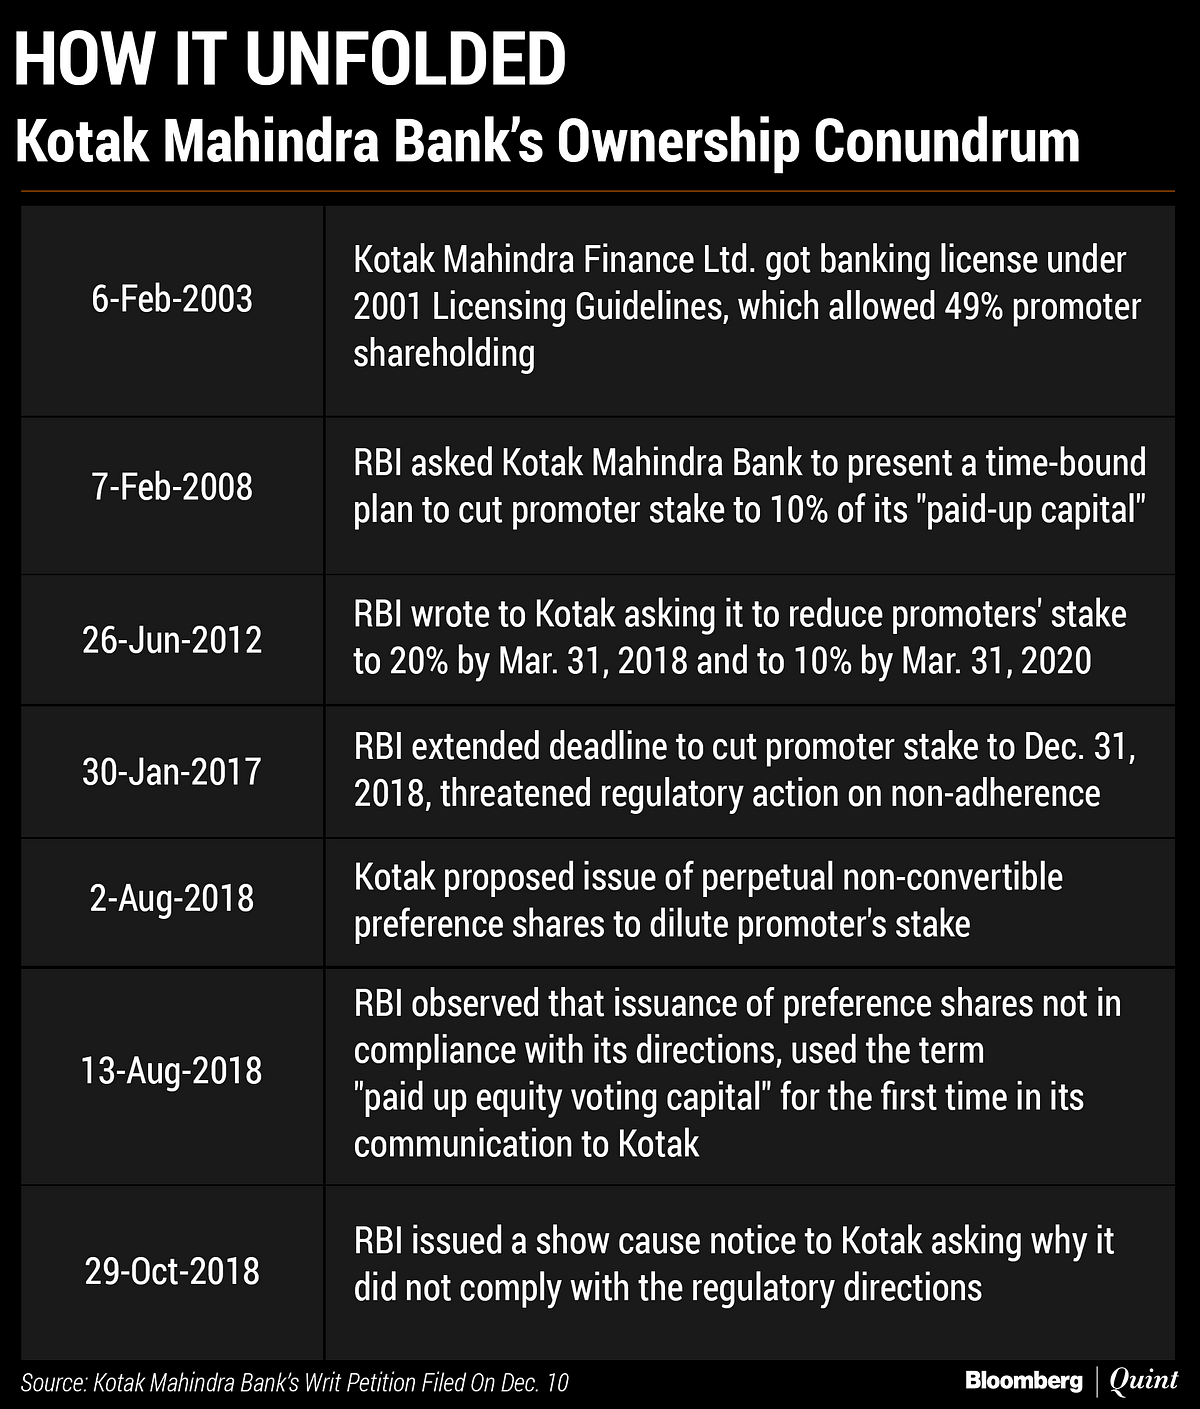 Kotak Mahindra Bank Petition Challenges RBI's Power To Curtail Promoter Shareholding: Exclusive